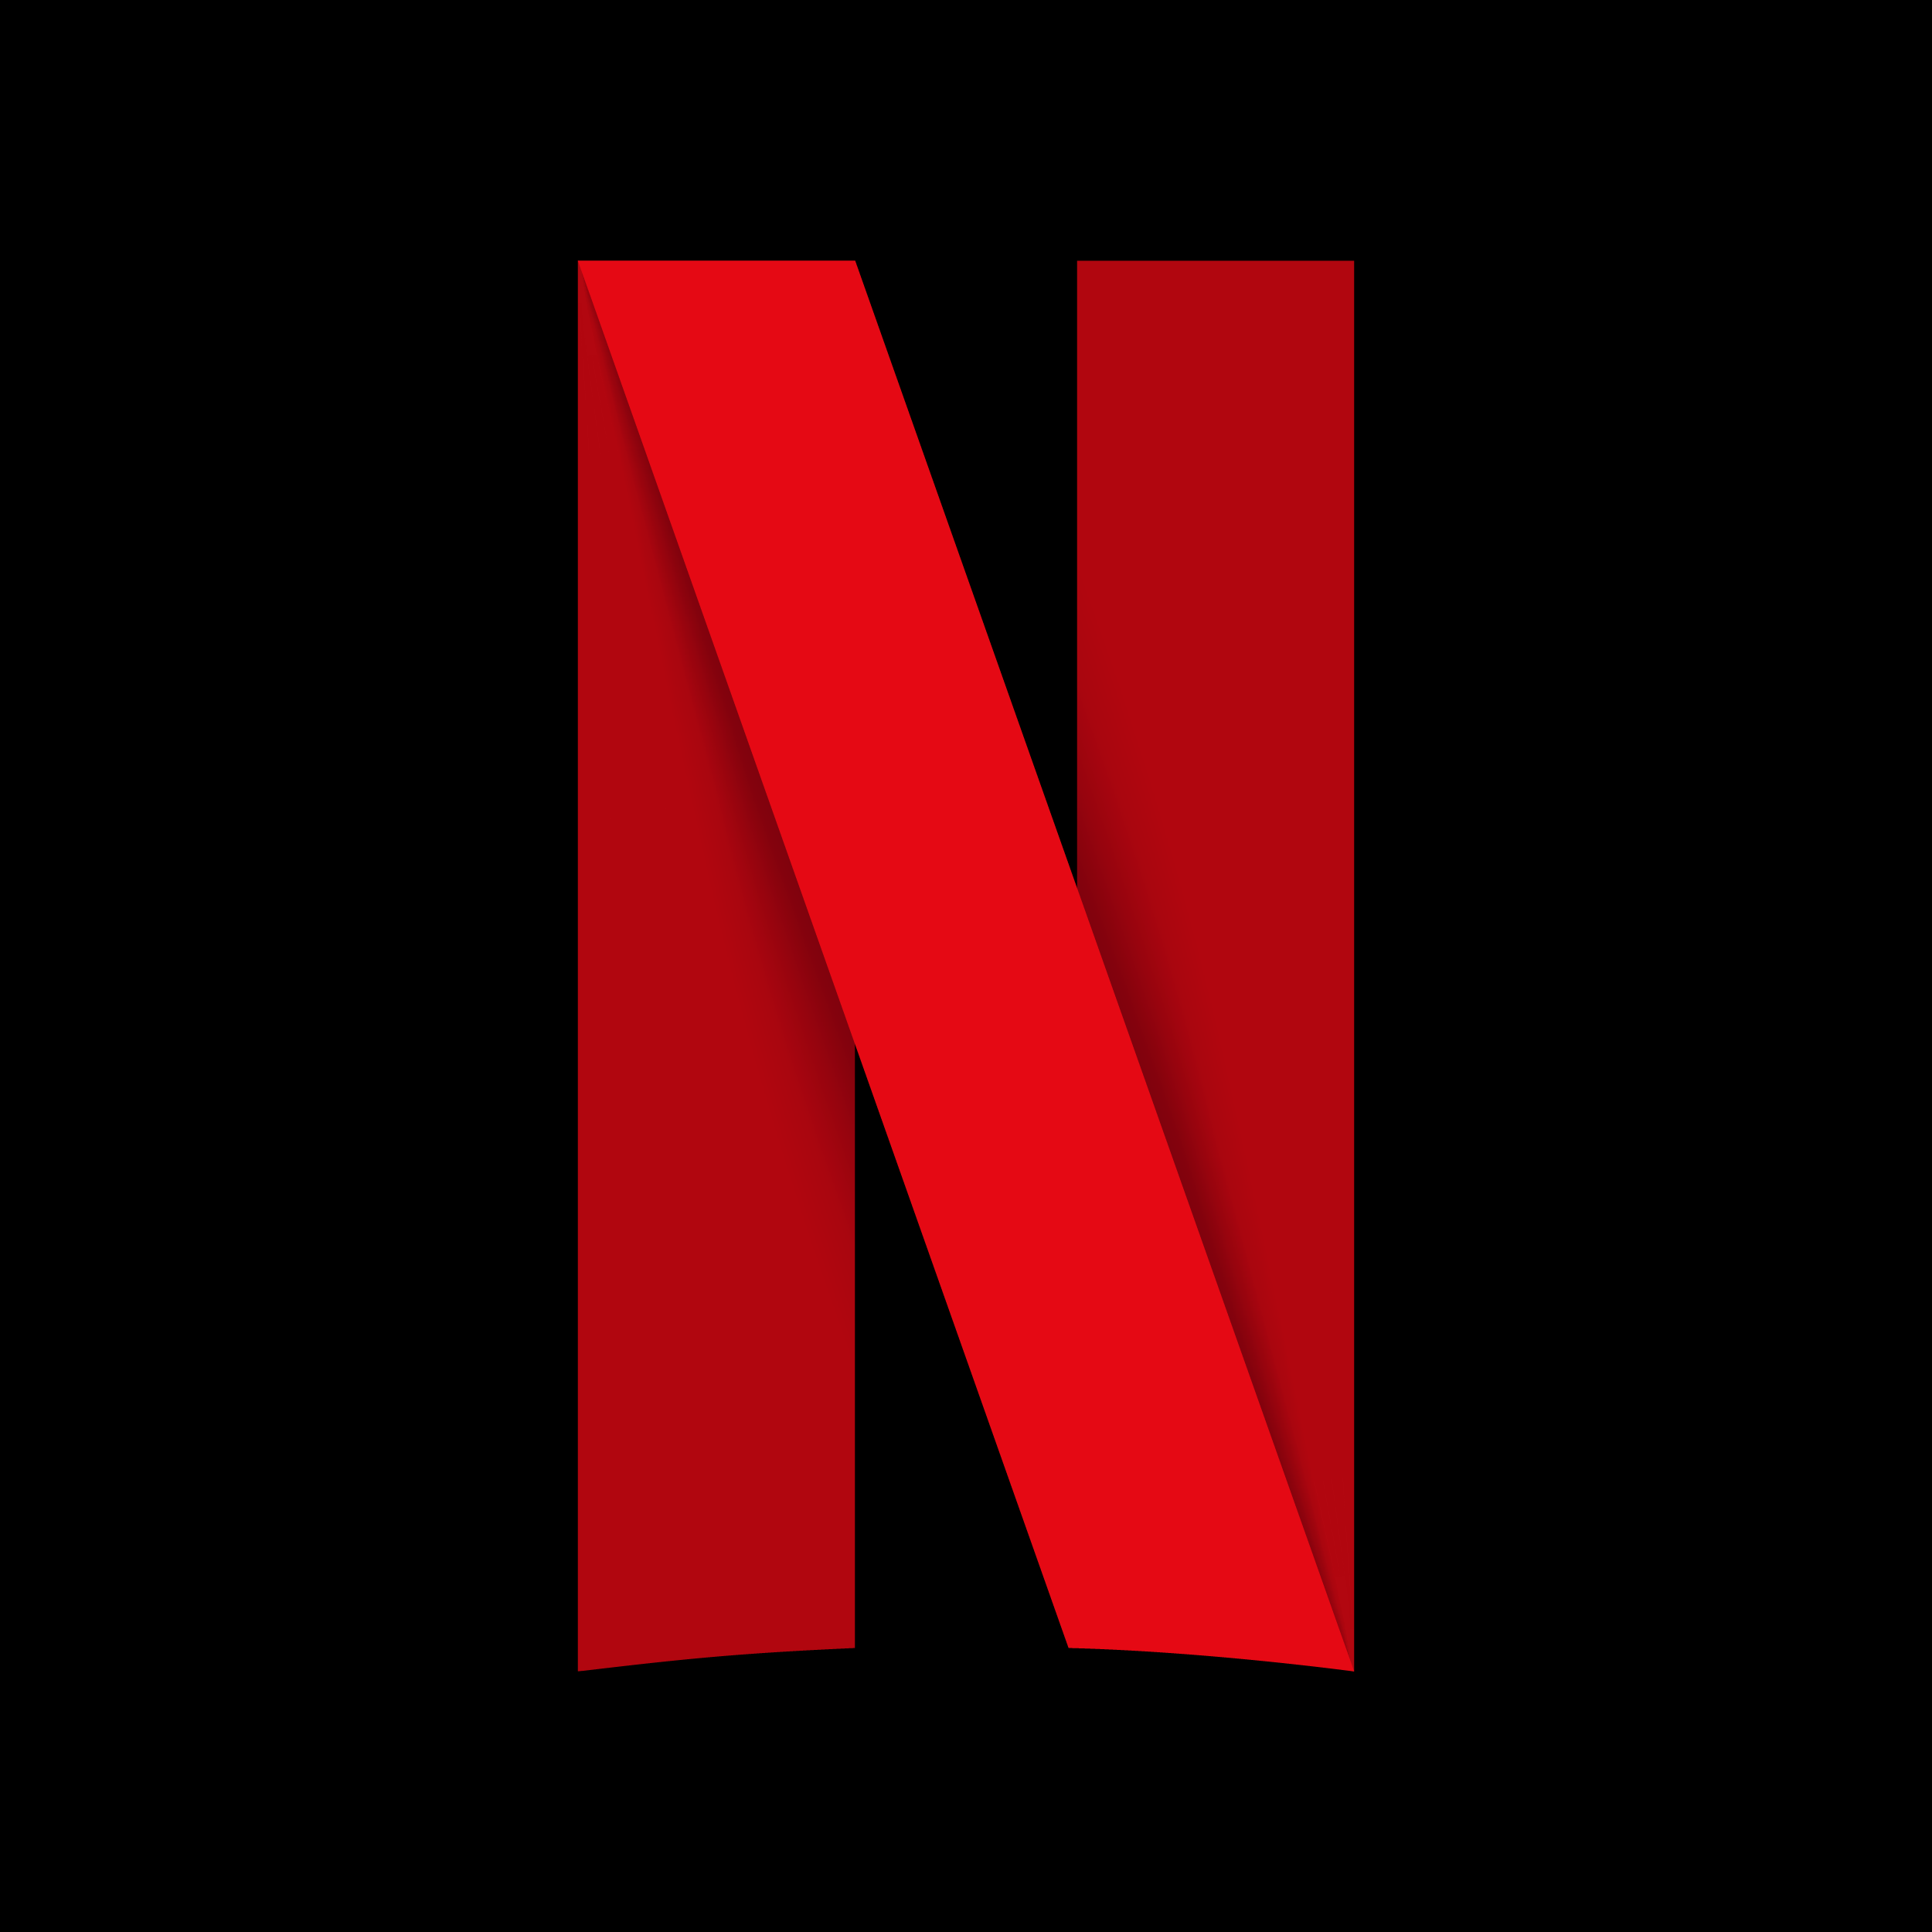 Oh Netflix, charging more for less